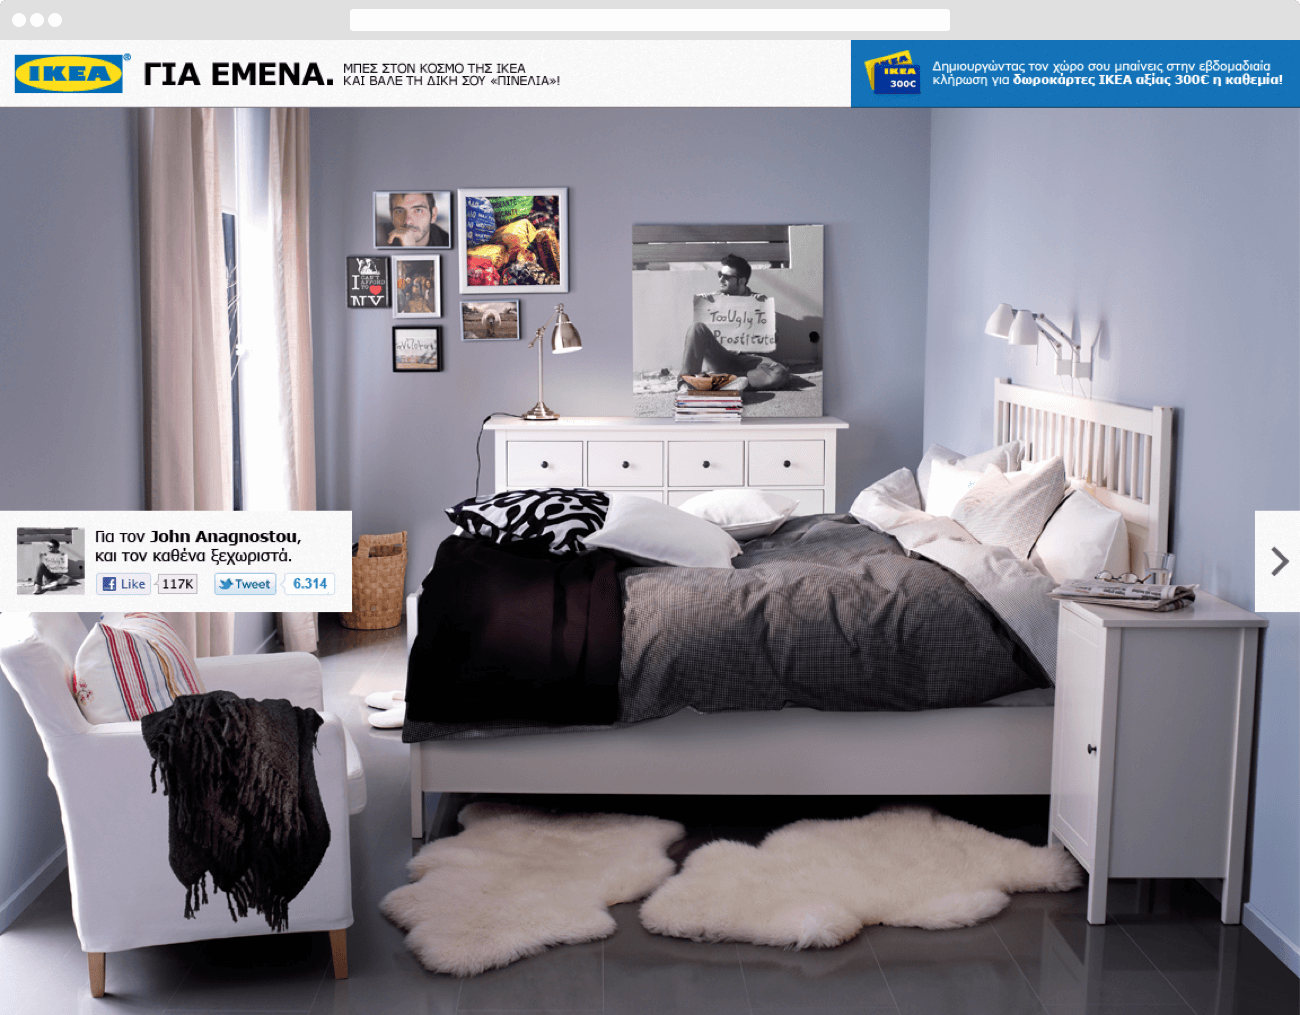 Ikea bedrooms facebook app by lovely productions for Ikea bedroom creator